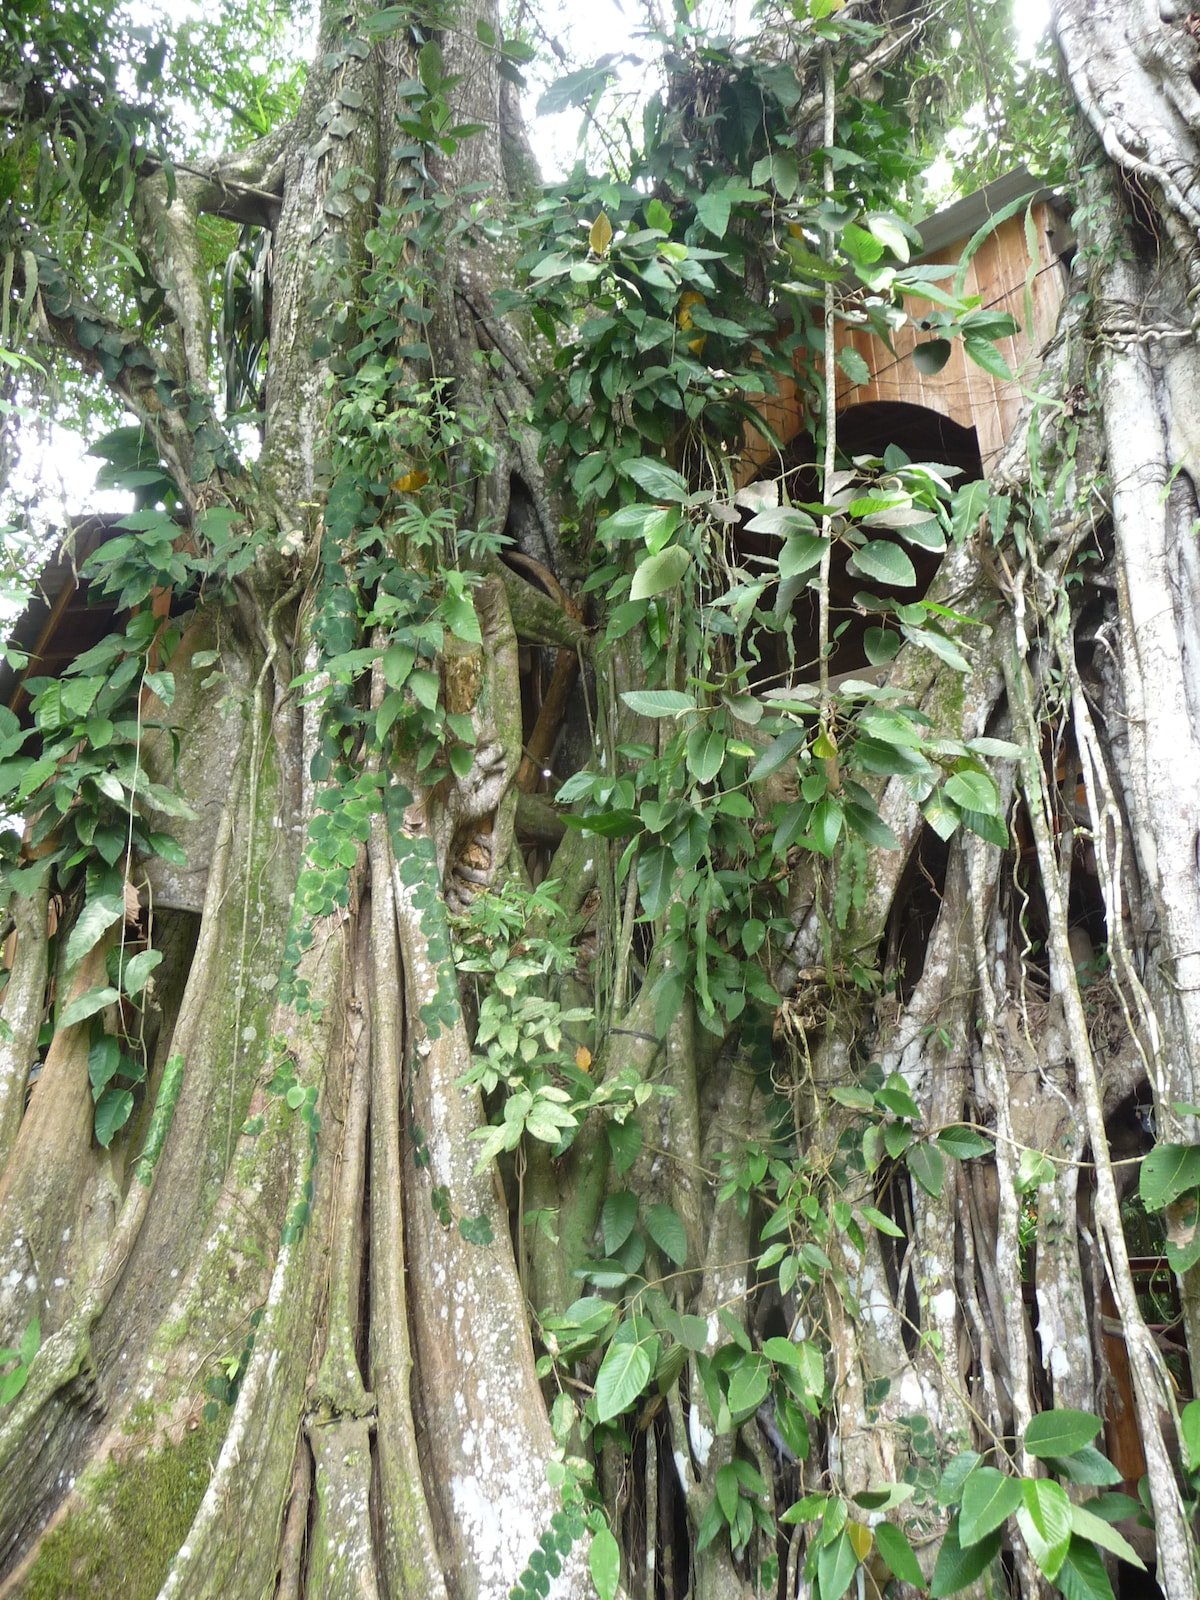 treehouse in a giant rubber tree (ficus)